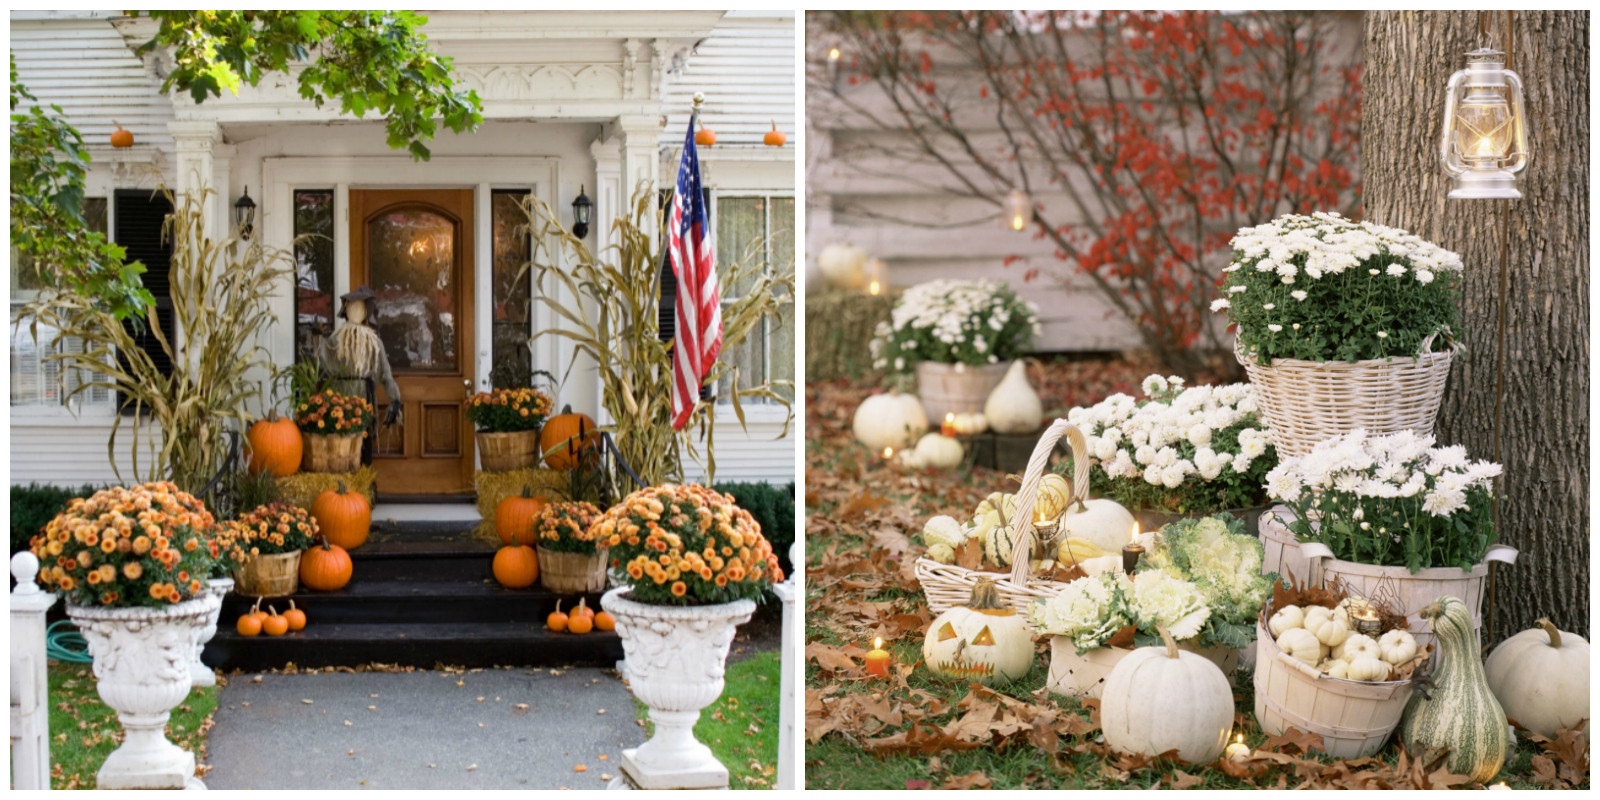 Best Outdoor Halloween Decorations  25 Outdoor Halloween Decorations Porch Decorating Ideas